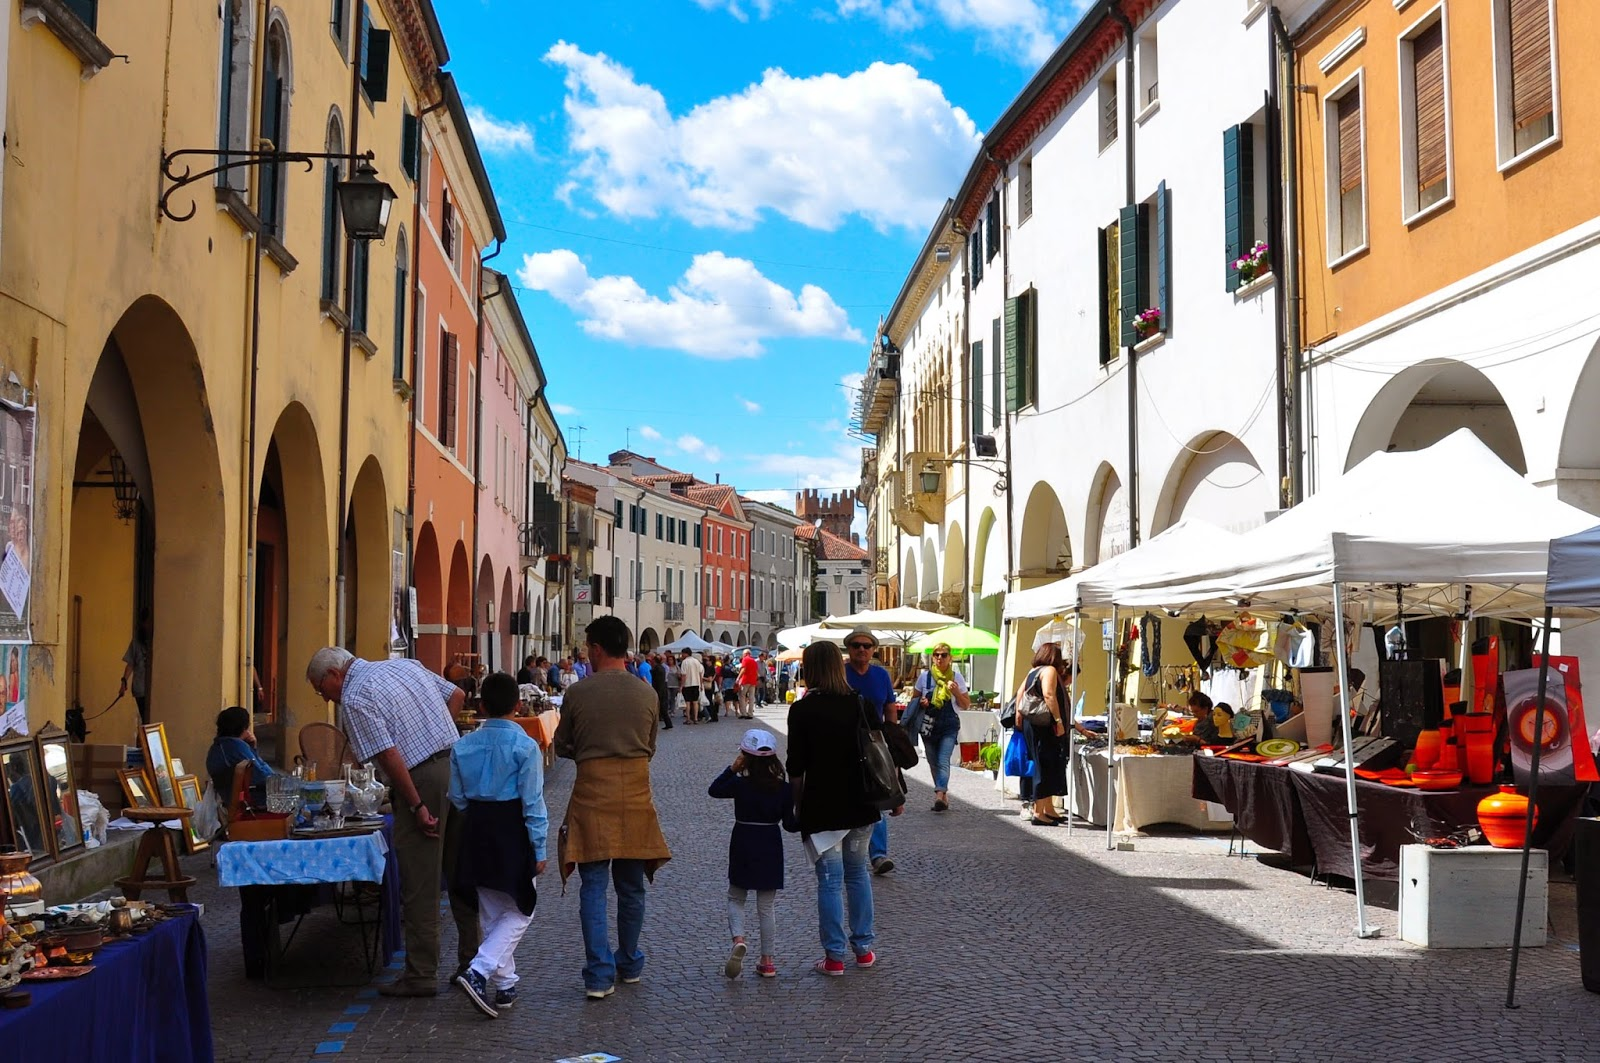 An antiques fair in Montagnana, Veneto, Italy